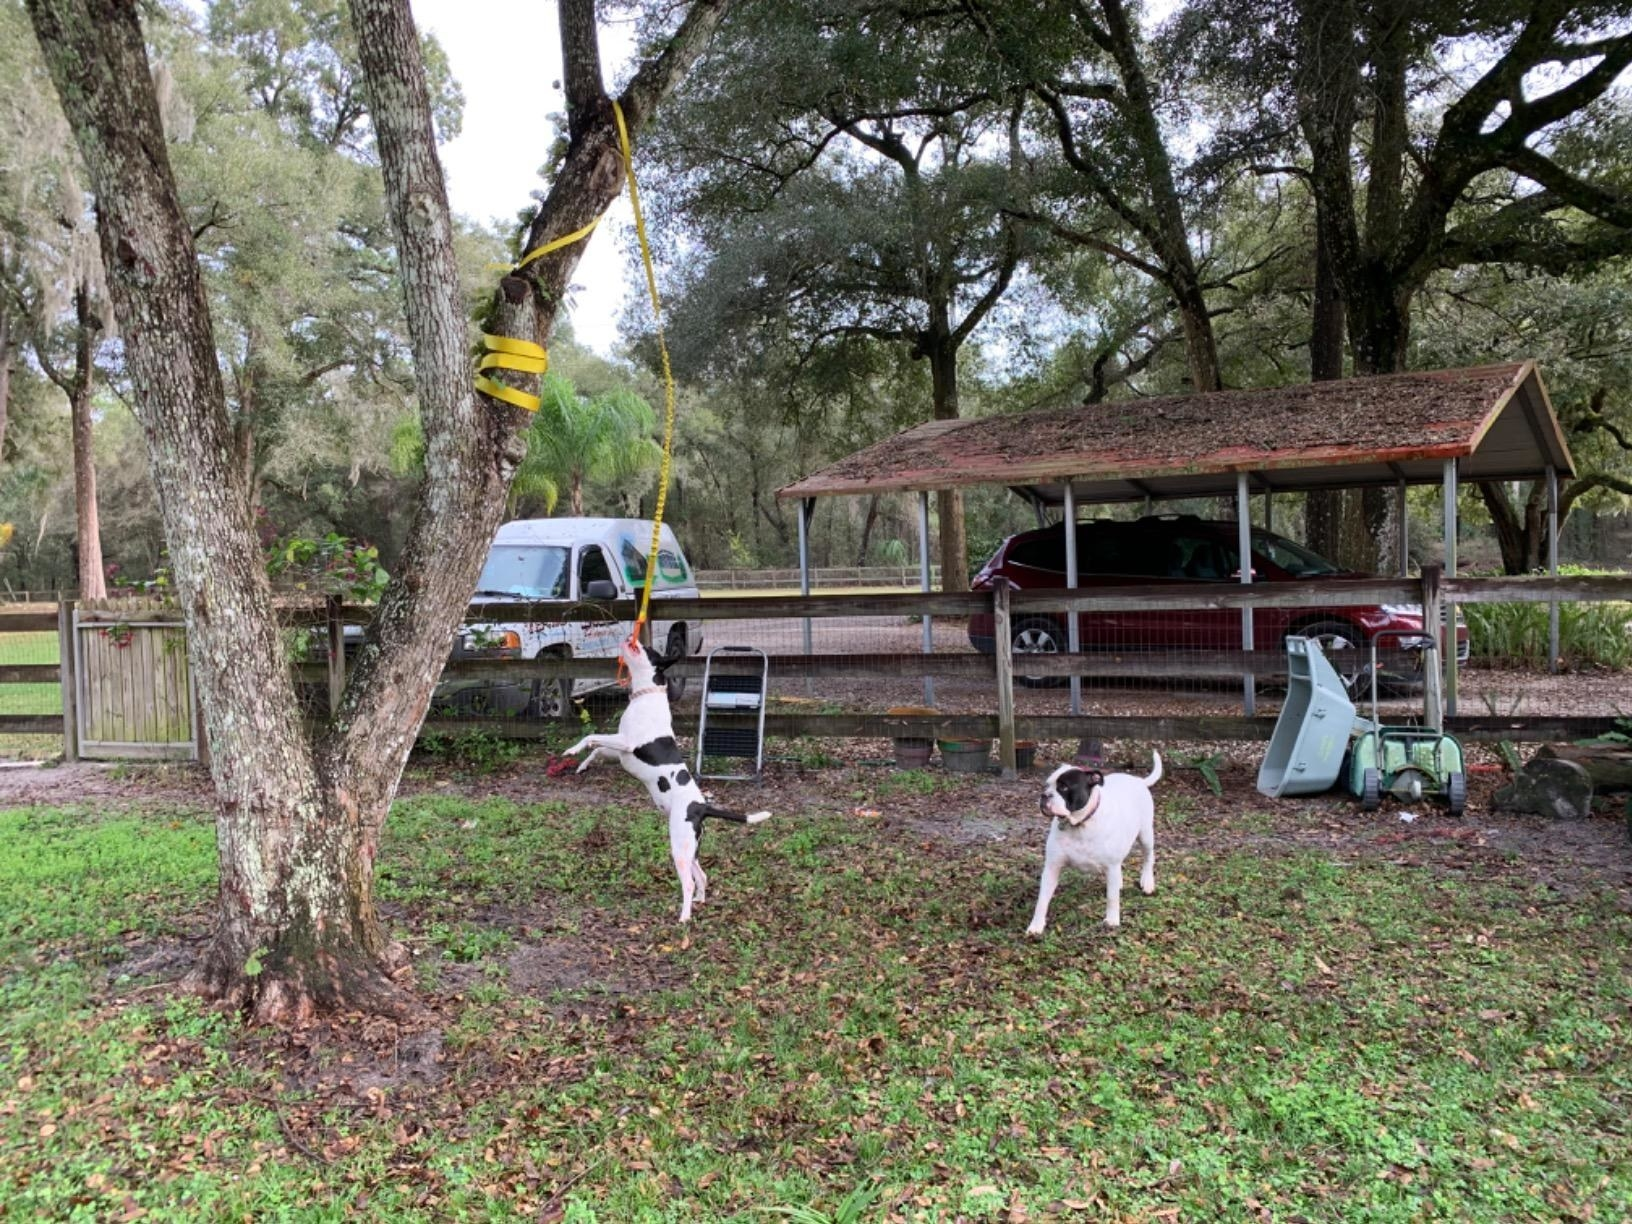 A black and white dog grabs the rope toy that's been wrapped around a thick branch and is hanging from a large tree